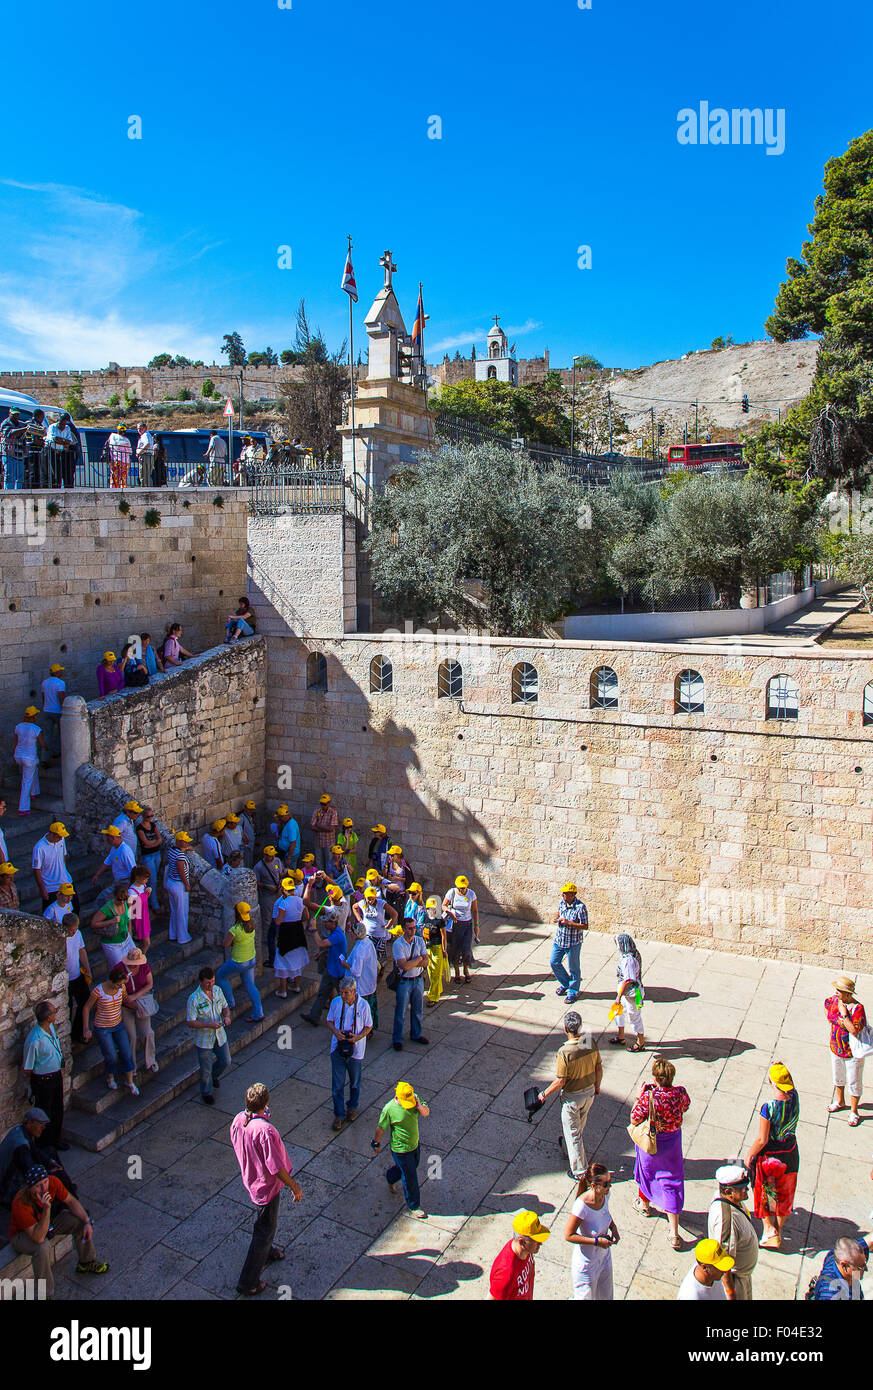 Israel, Jerusalem, people in  the Mary's Tomb Church - Stock Image